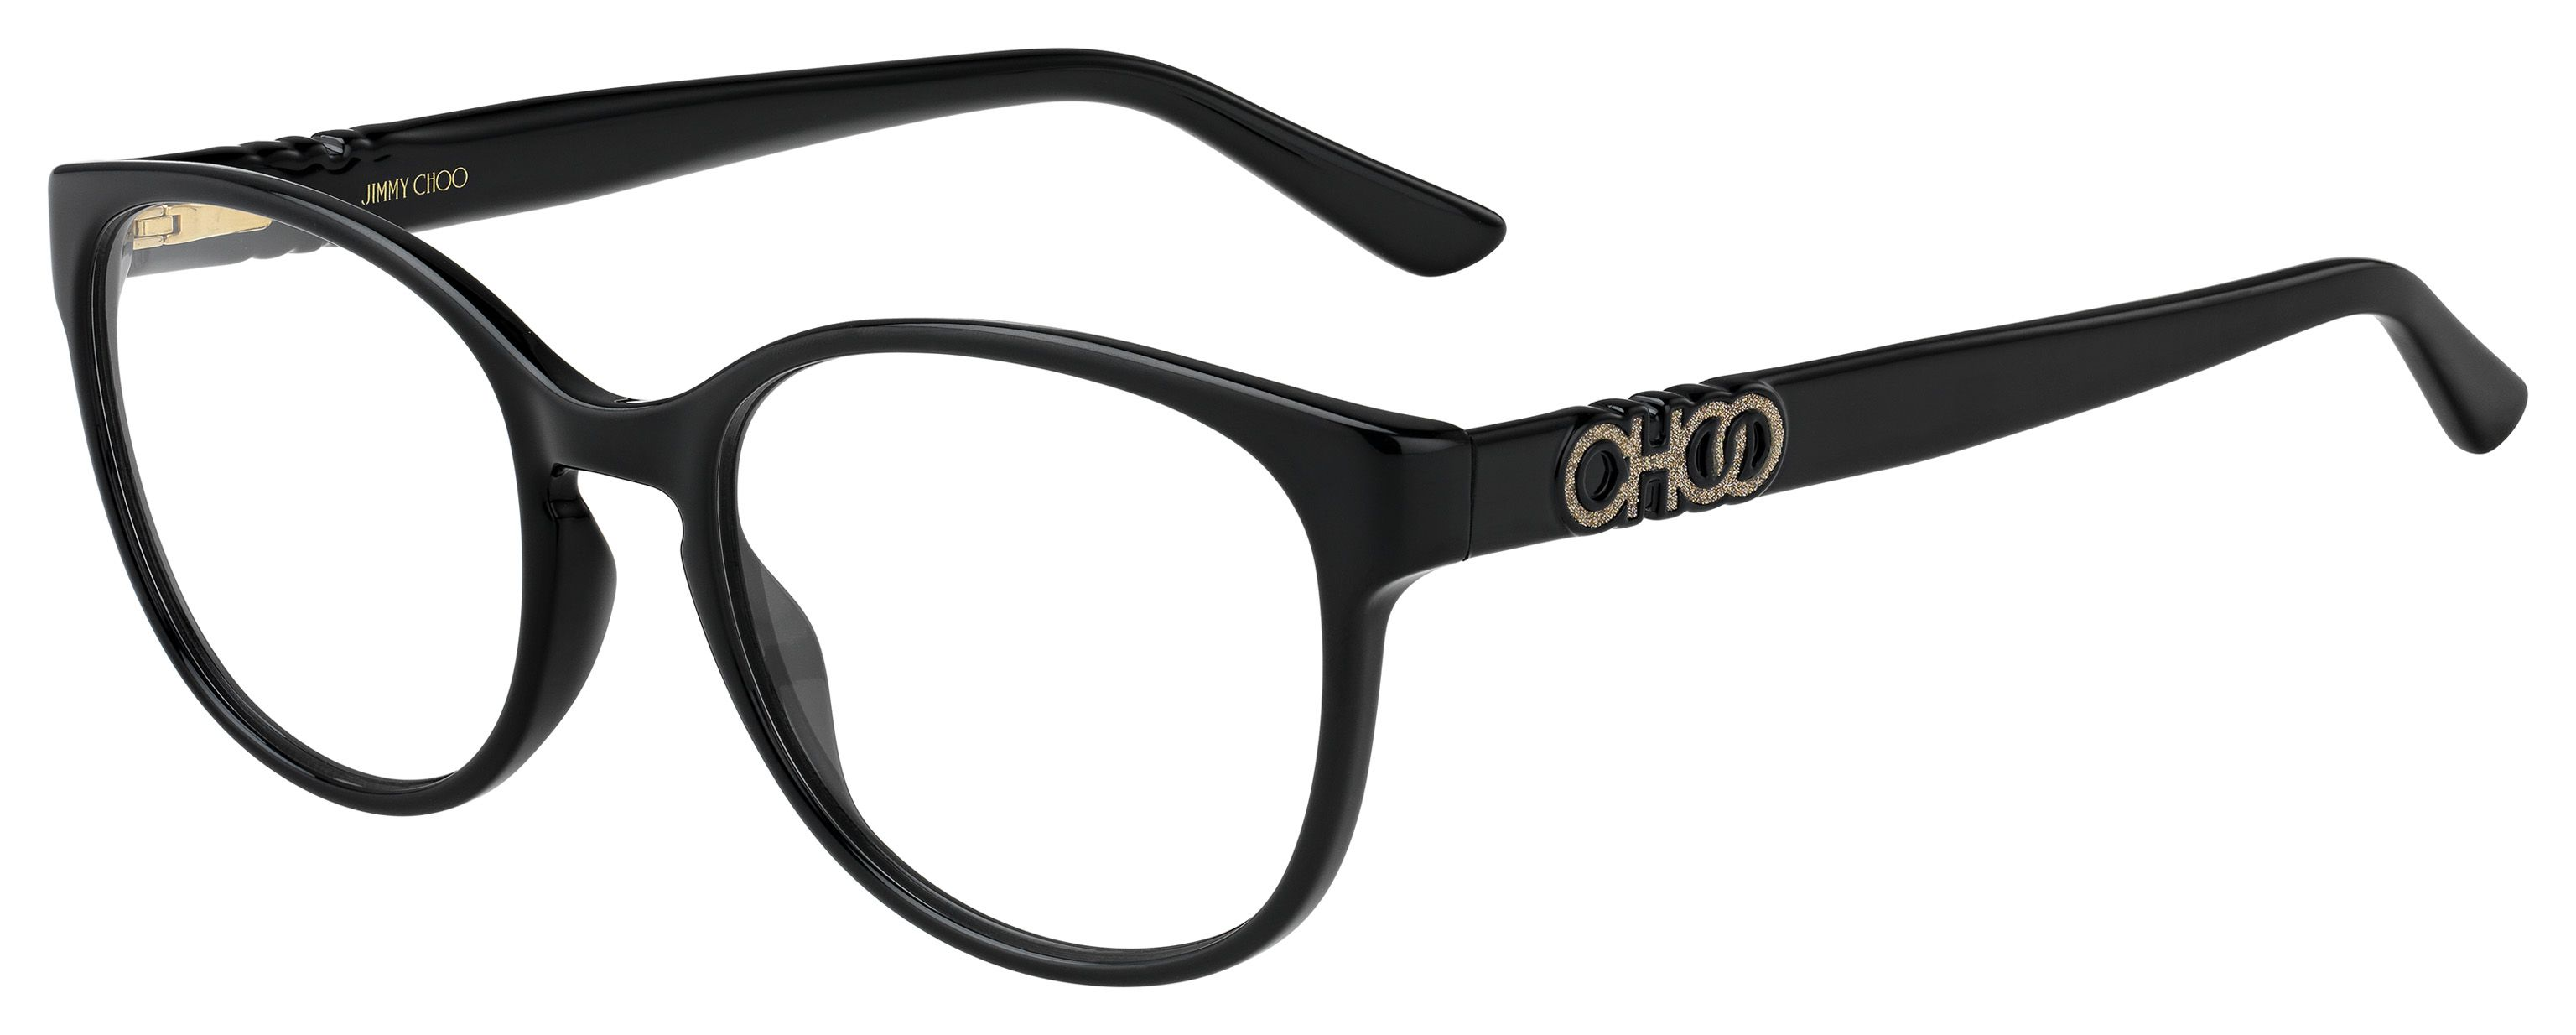 Jimmy Choo 240 807